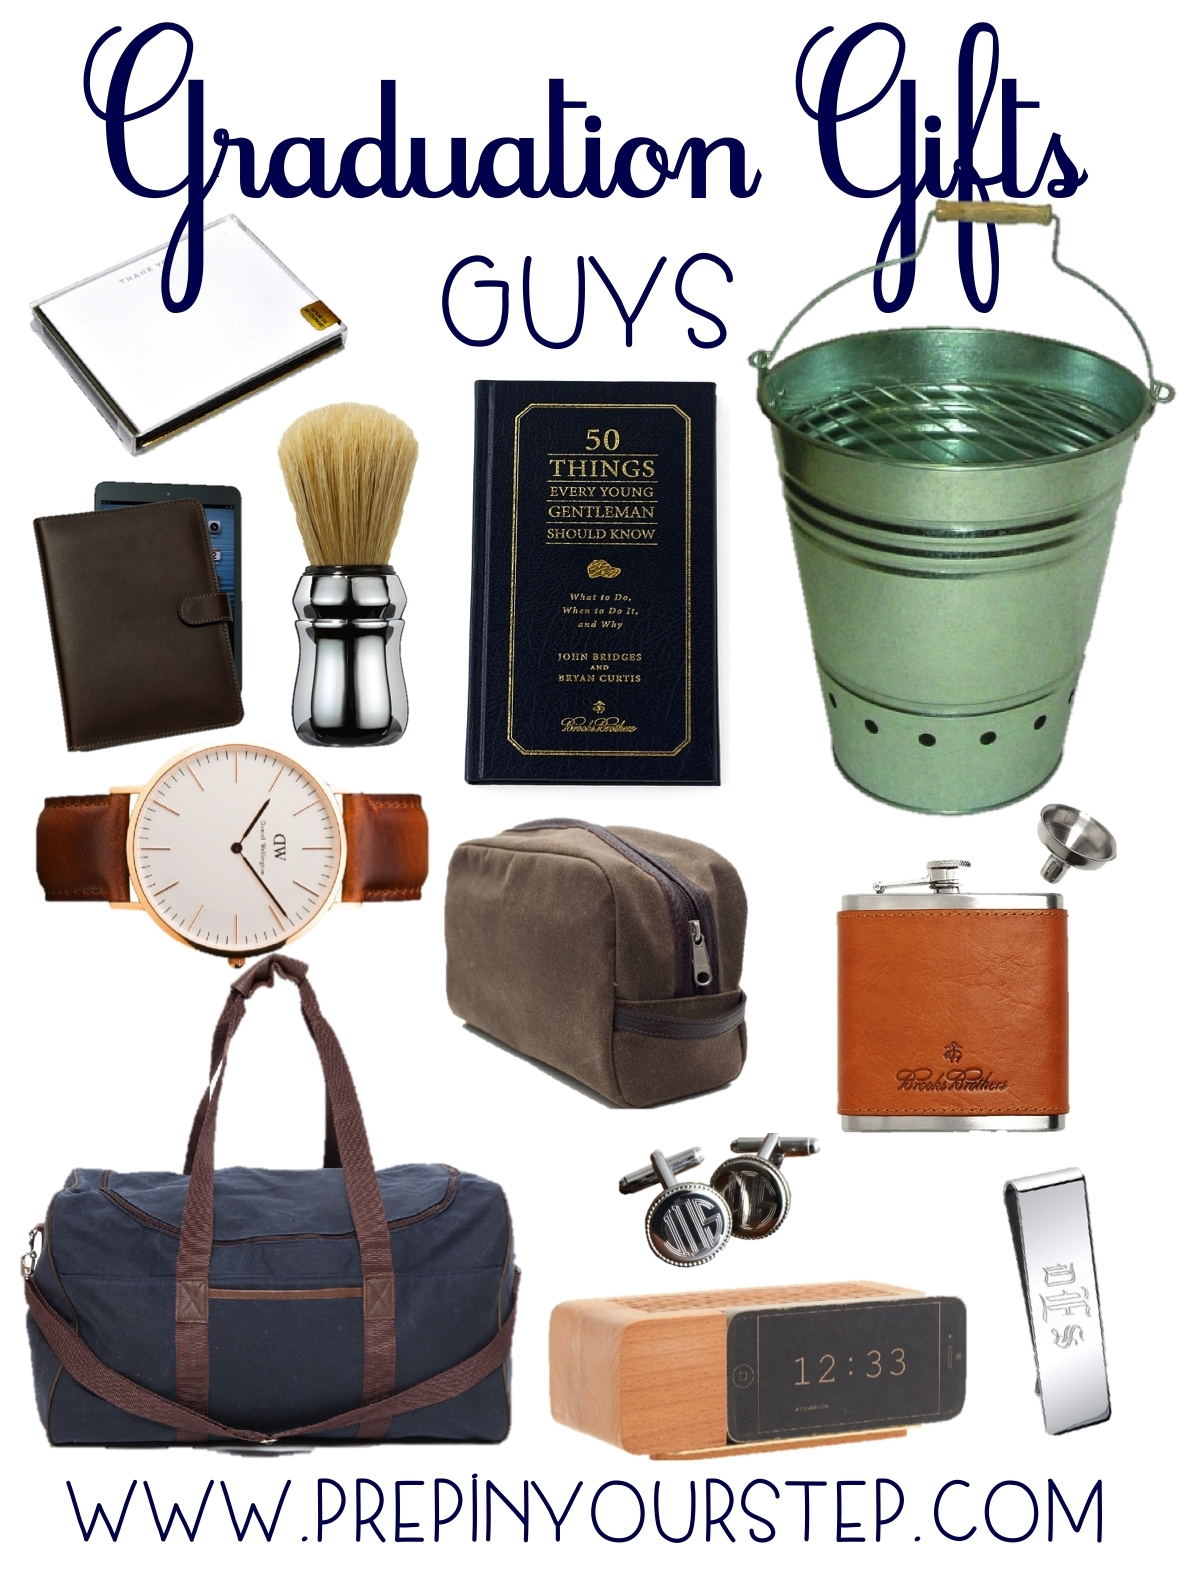 10 Stunning Gift Ideas For College Graduates %name